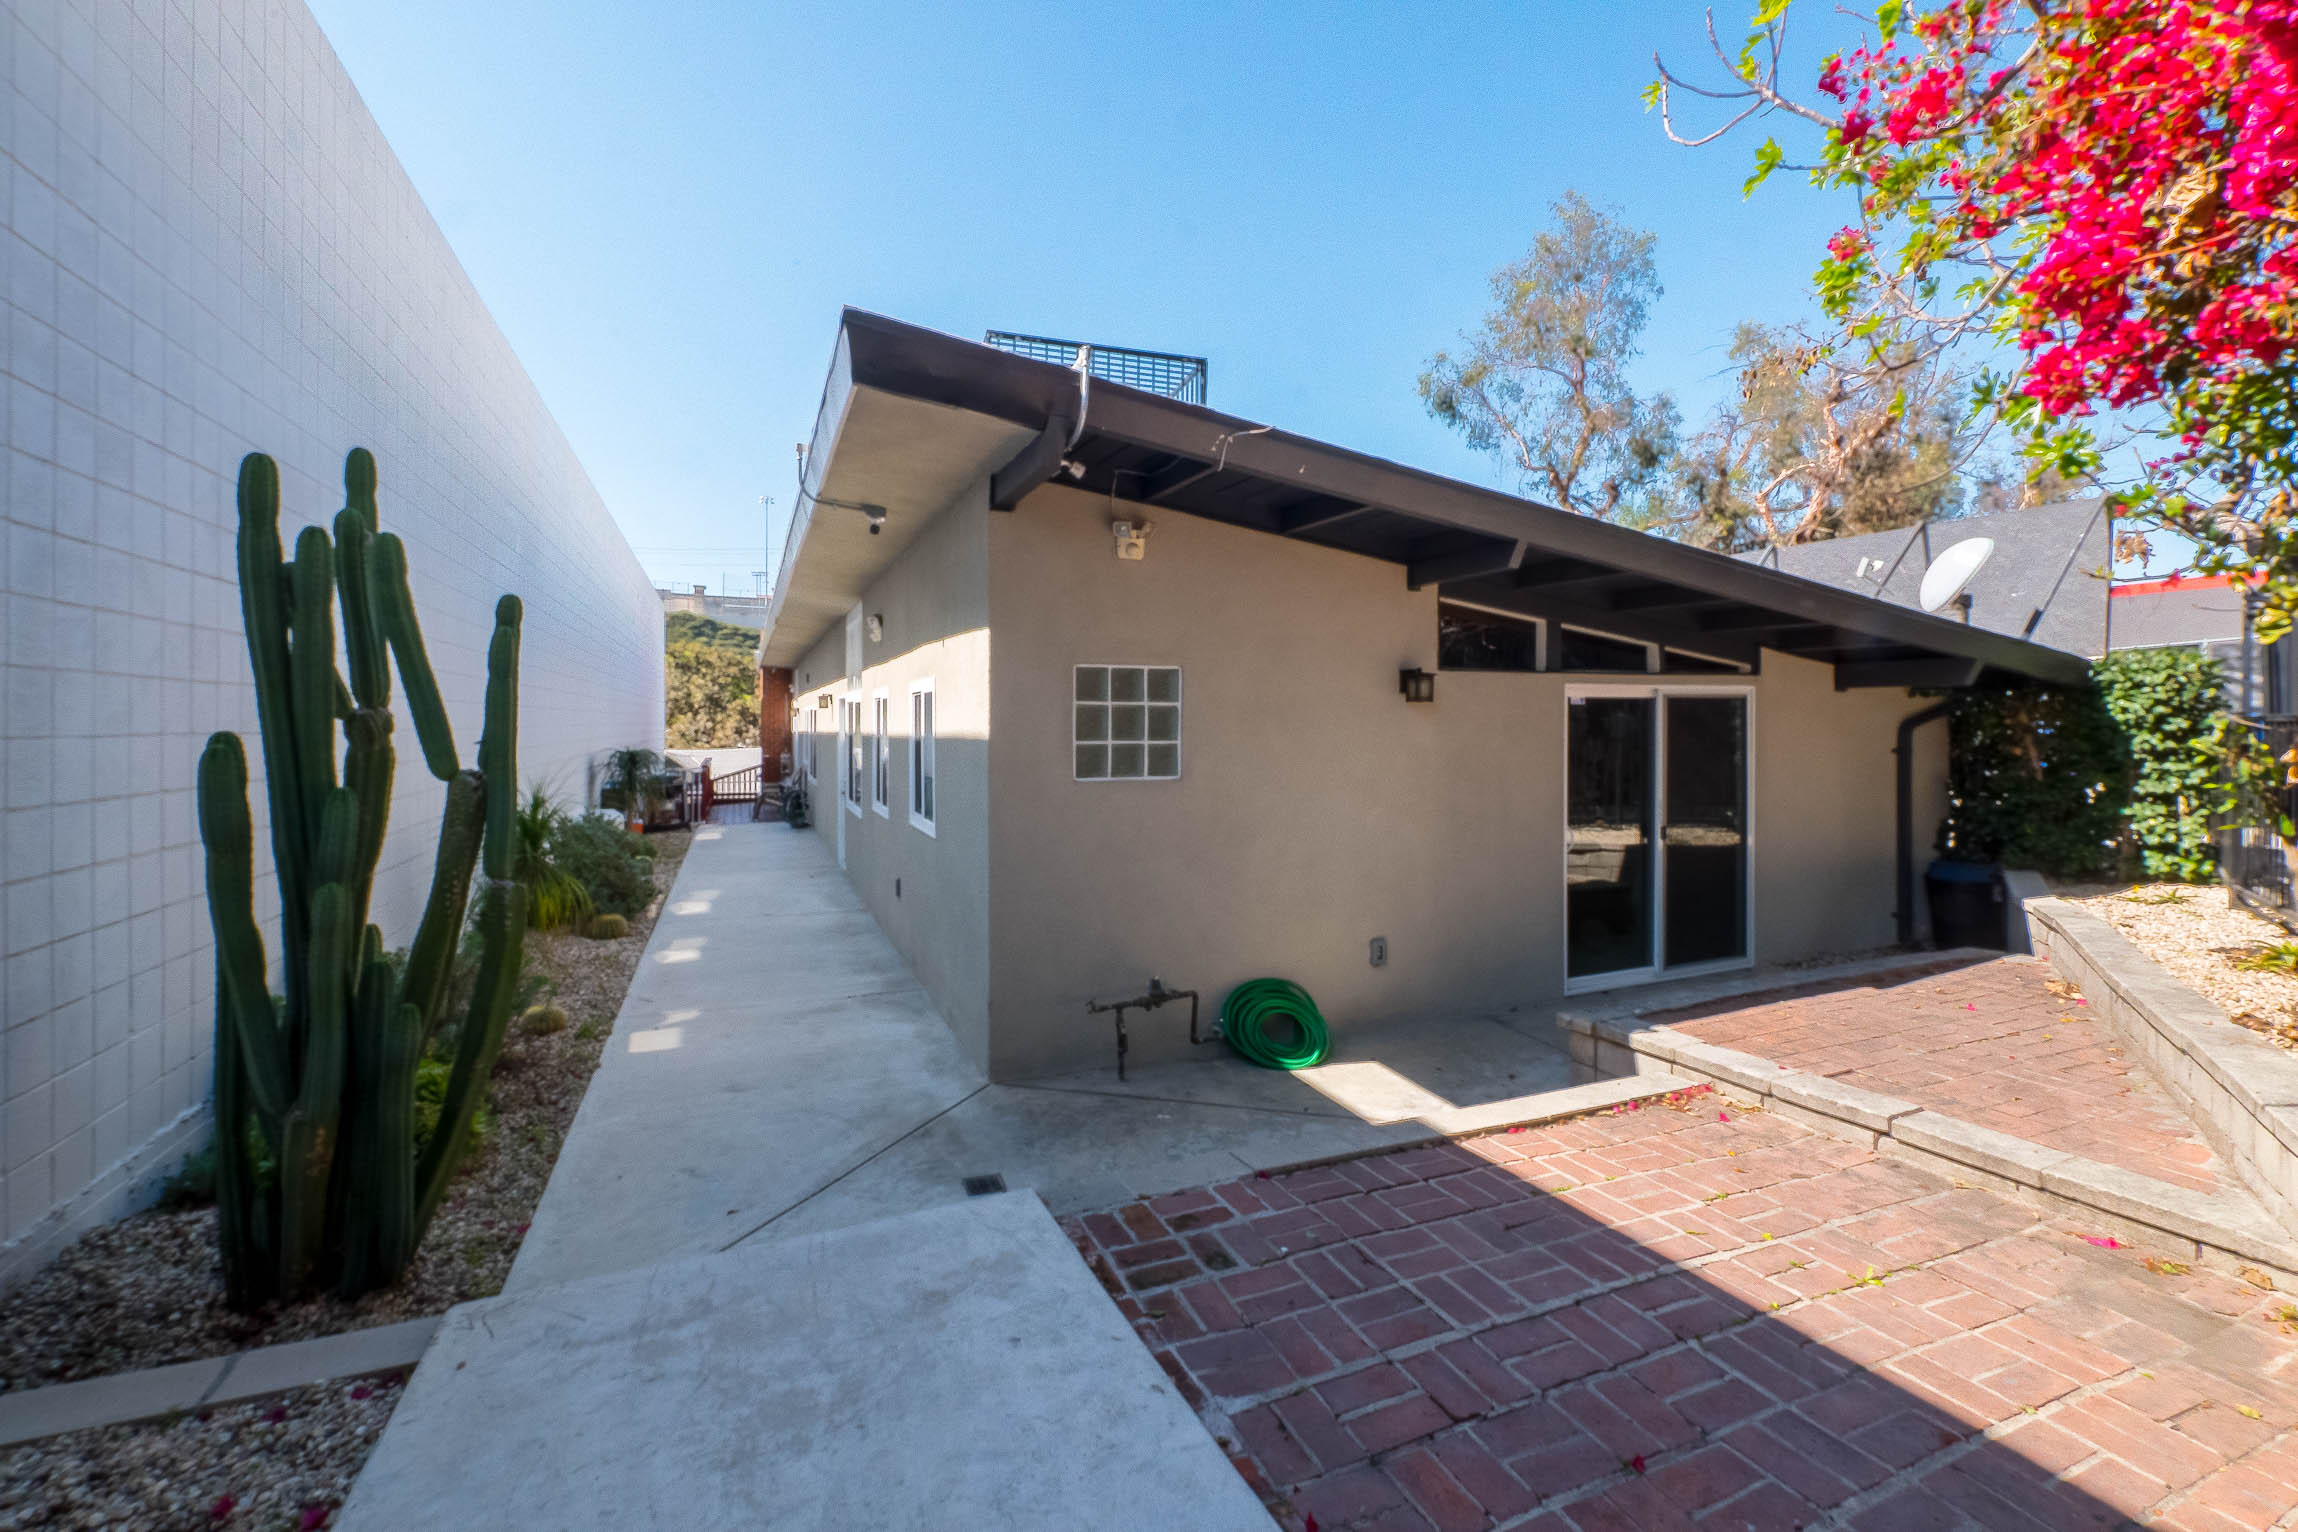 Spectacular 2 Bedroom W/ Exposed Beams & Brick Details | Minutes Away From Prime DTLA & Echo Park!